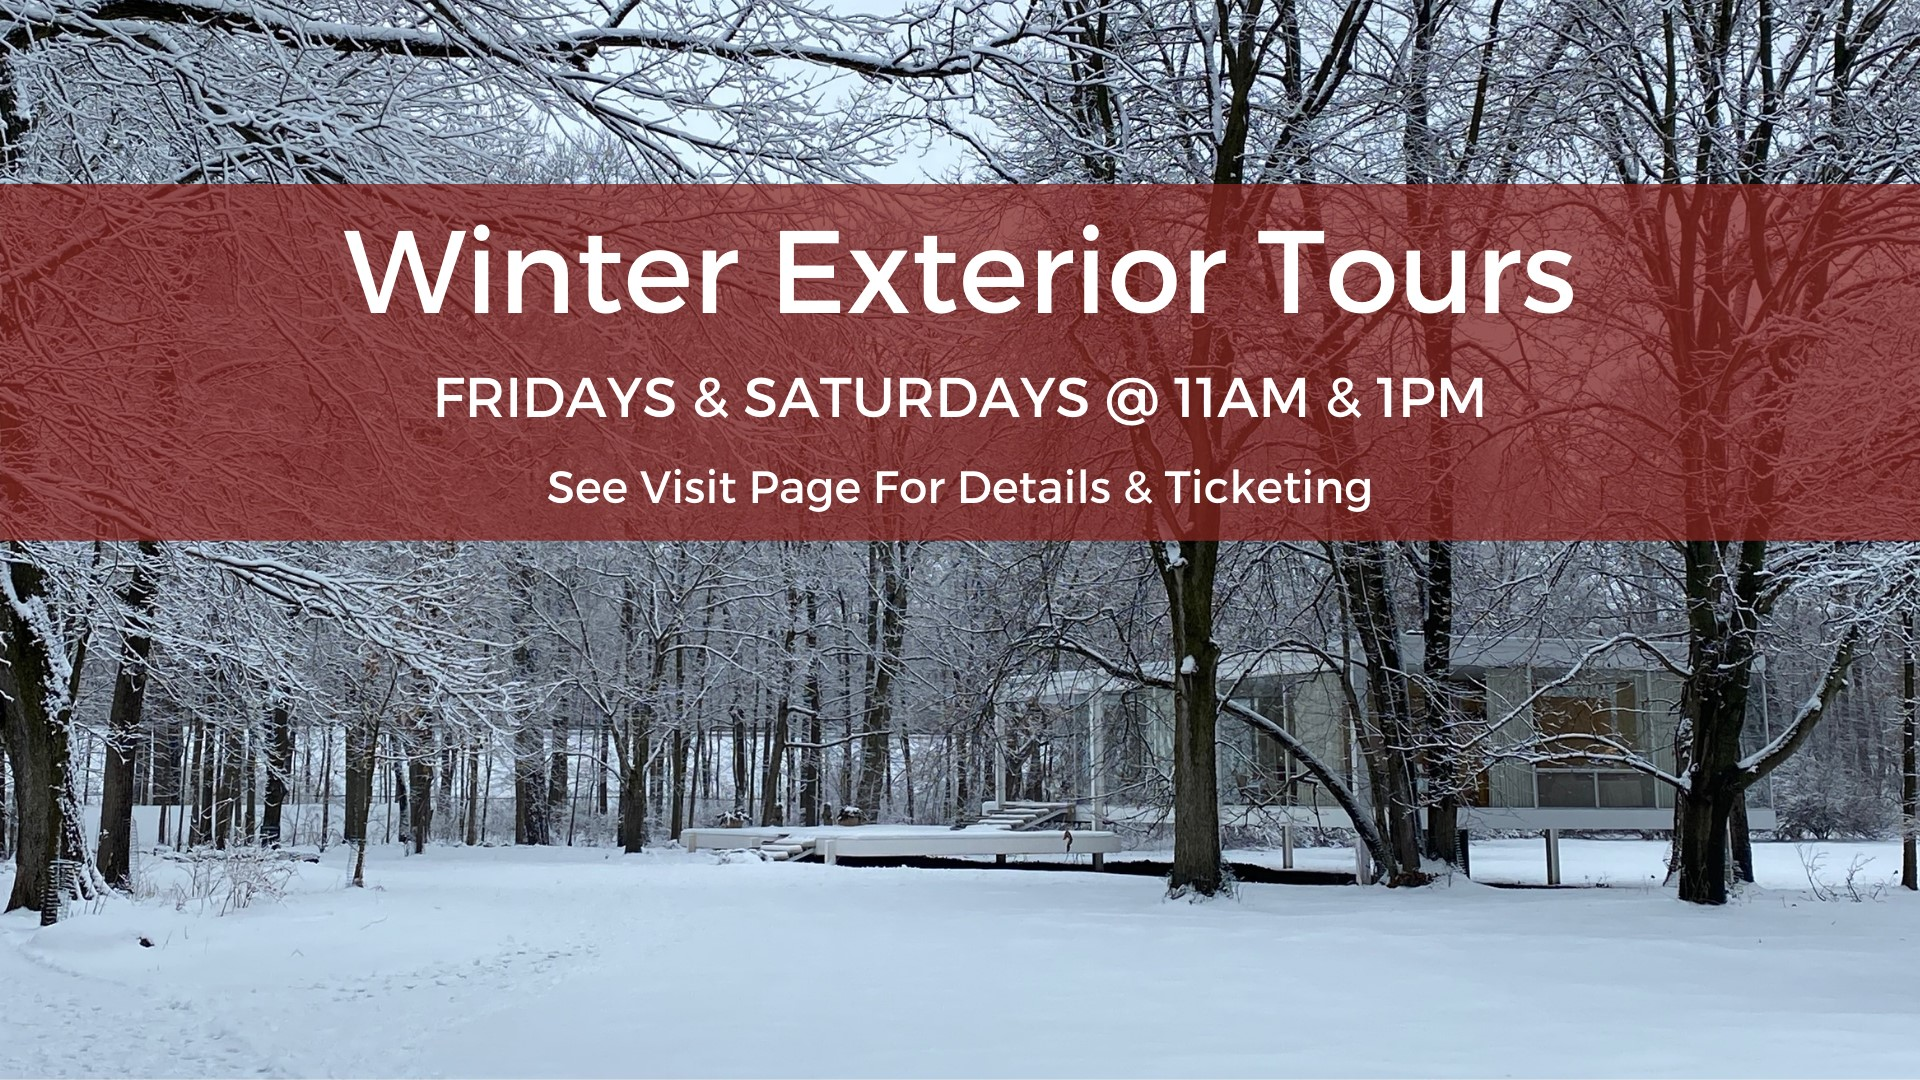 Winter Exterior Tours